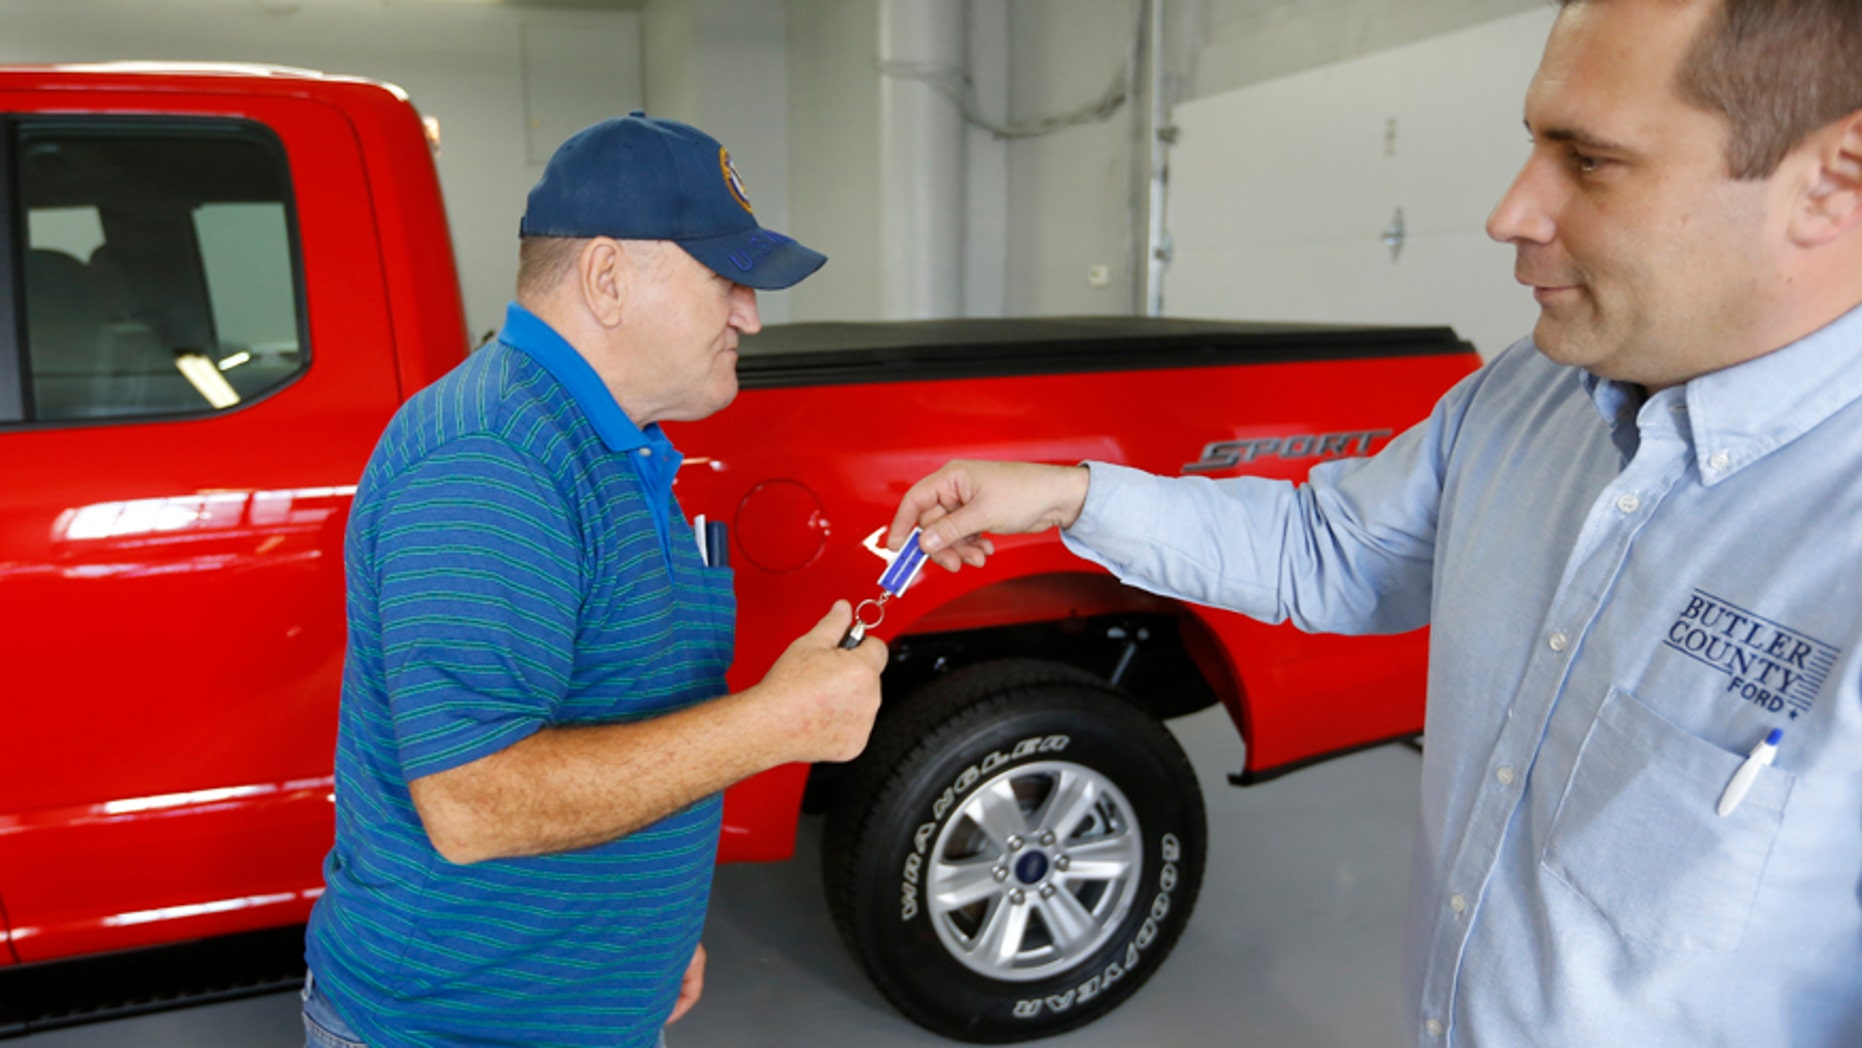 In this Thursday, Nov. 19, 2015, photo, Alton John, left, from Kittanning, Pa., gets the keys to his new 2015 Ford F-150 Supercab 4x4 pickup truck from salesman Robert Myers as he takes delivery at Butler County Ford in Butler, Pa. Haggling over a car price isnt for everyone. The angst has spawned a small but growing trend toward no-haggle alternatives found at discount club stores, some dealers and on several Internet sites. (AP Photo/Keith Srakocic)